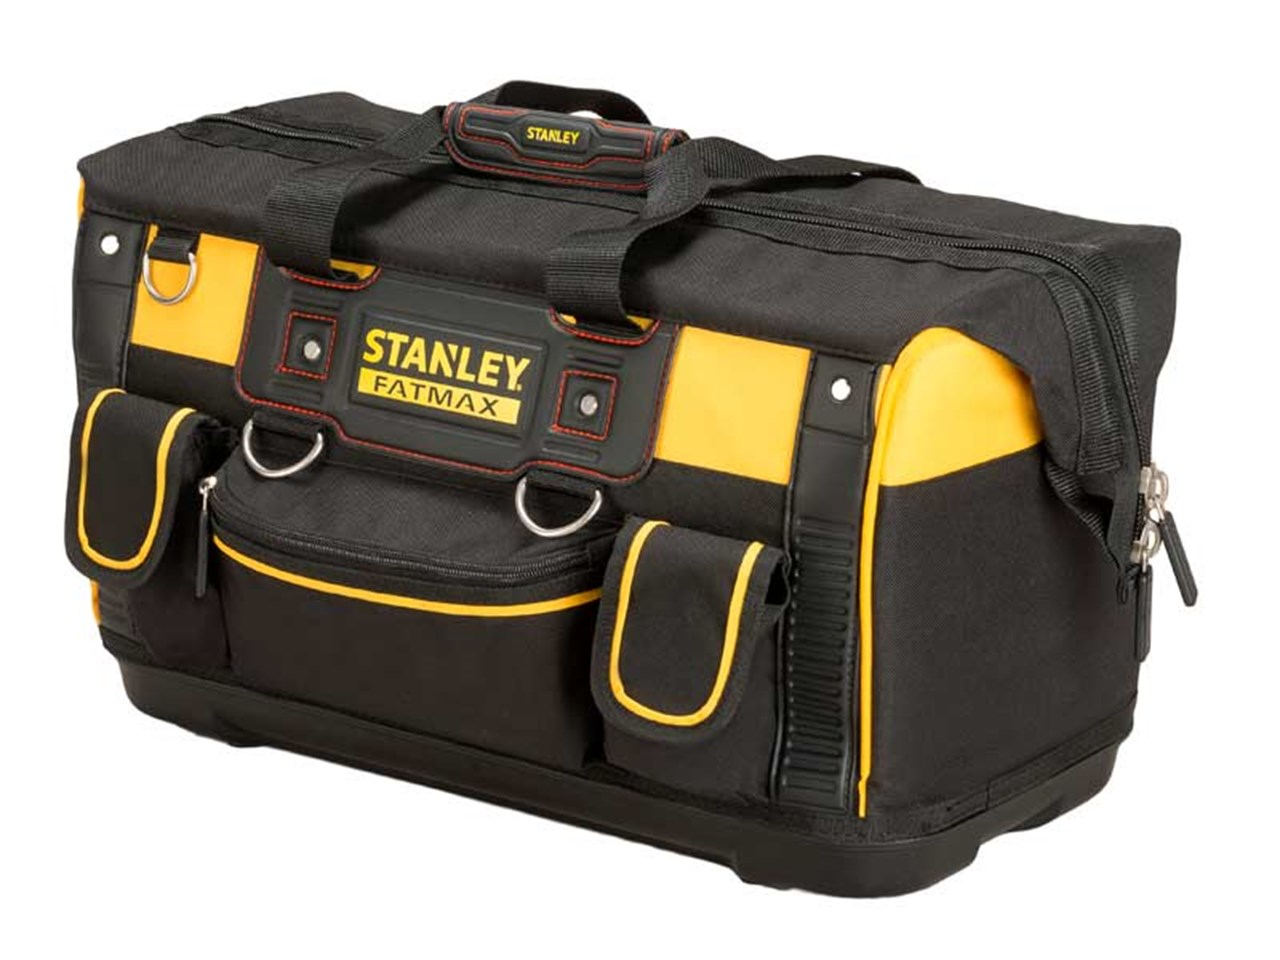 stanley sta171180 fatmax open mouth tool bag. Black Bedroom Furniture Sets. Home Design Ideas